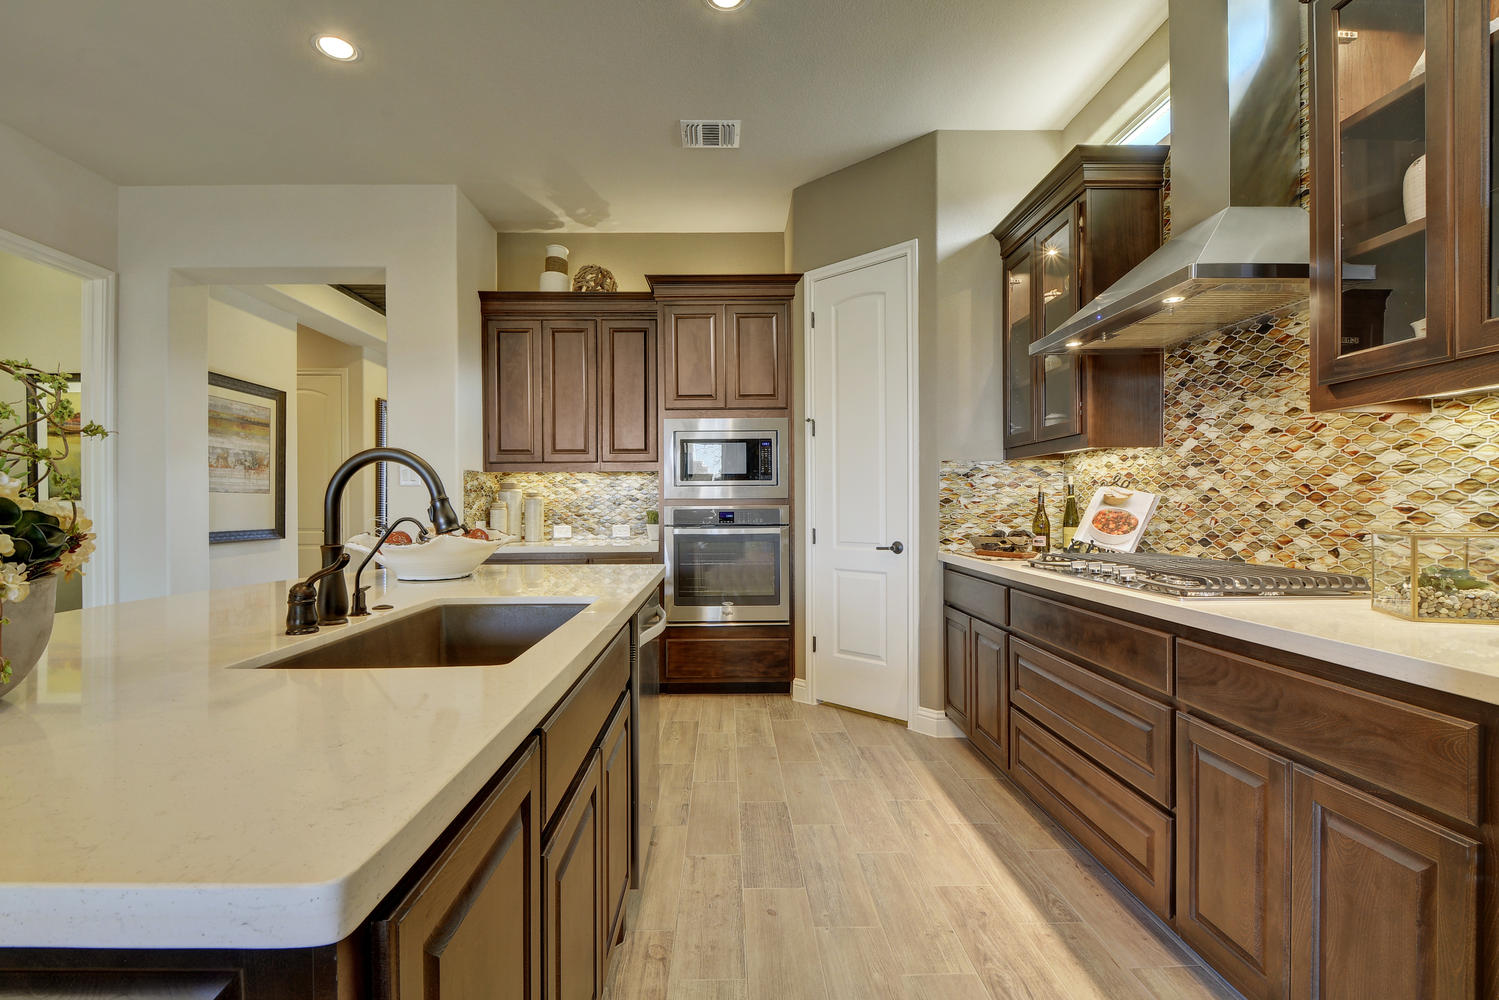 include varnished wood cupboards from style granite doors beech cupboard kitchen semihandmade kansas drawers door brown cabinet cabinets countertop covers cream